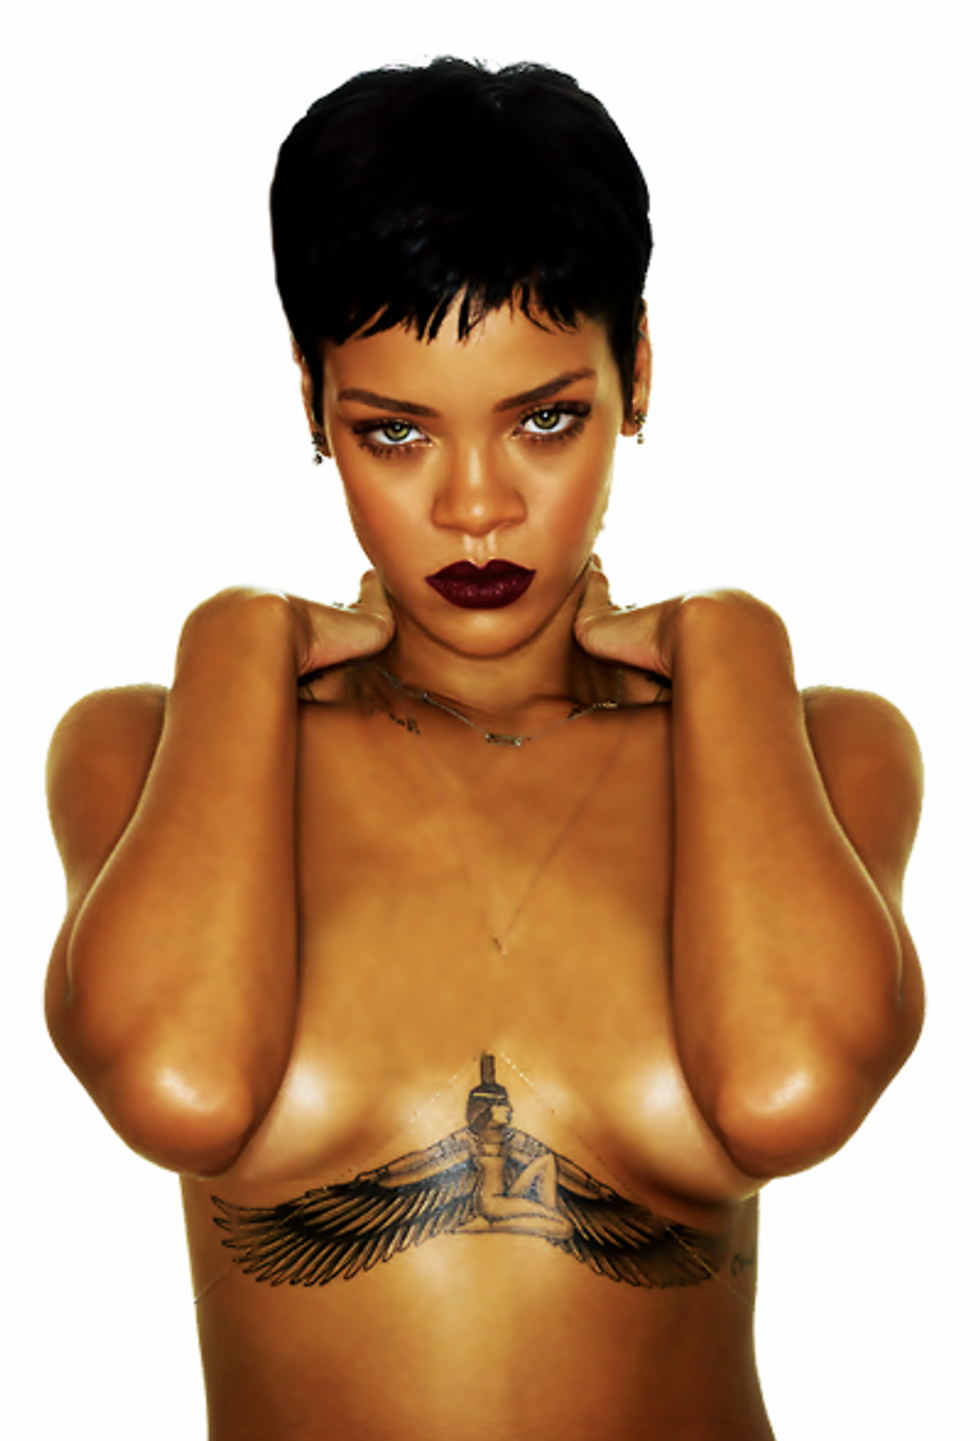 Be Bad Girl RiRi for a Day with her New Collection of Temporary Tattoos